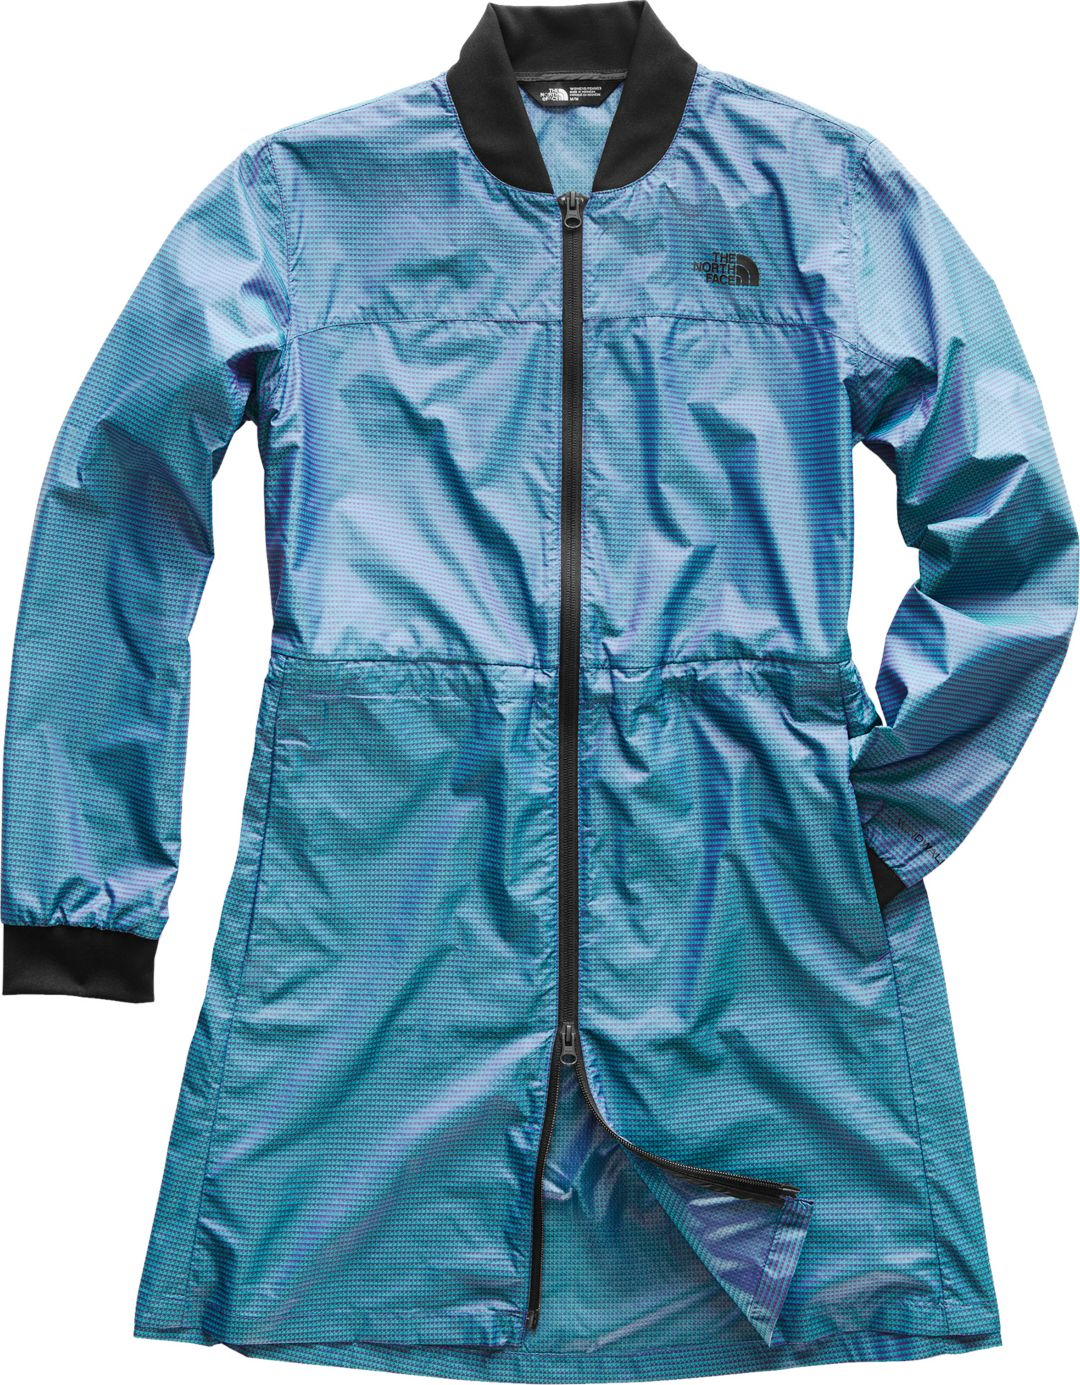 06ce134f0 The North Face Women's Flybae Bomber Jacket